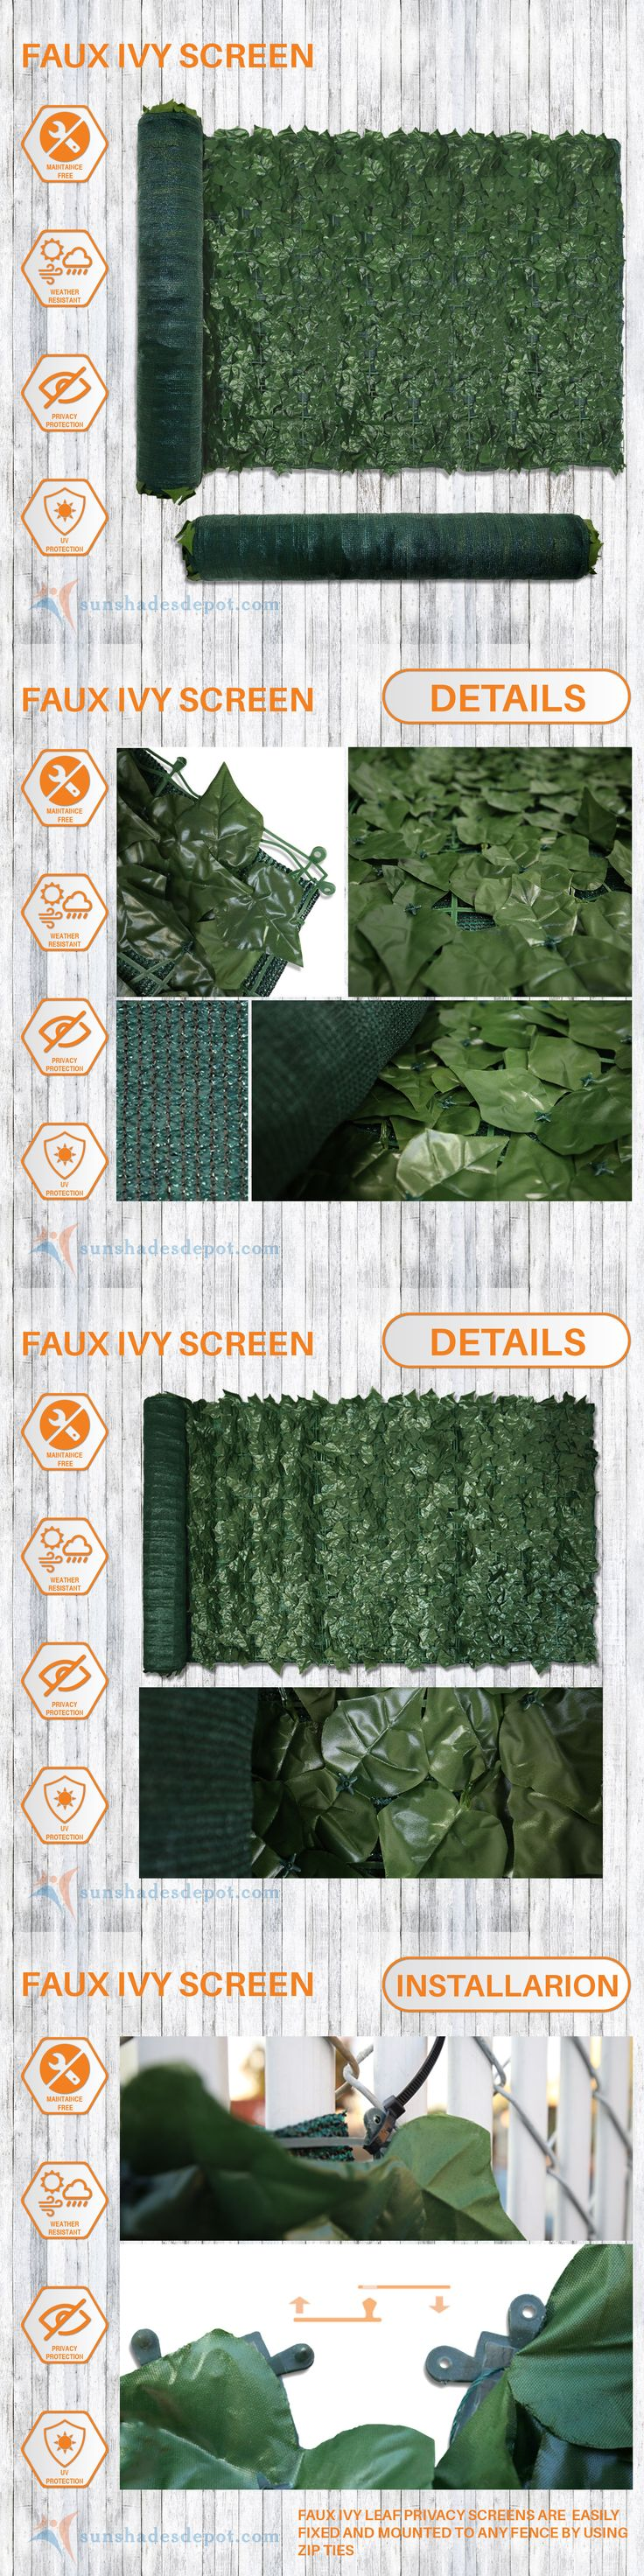 Privacy screen for chain link fence ebay - Fence Panels 139946 Artificial Green Ivy Leaf Privacy Fence Screen Decoration Panels Wall Cover Gate